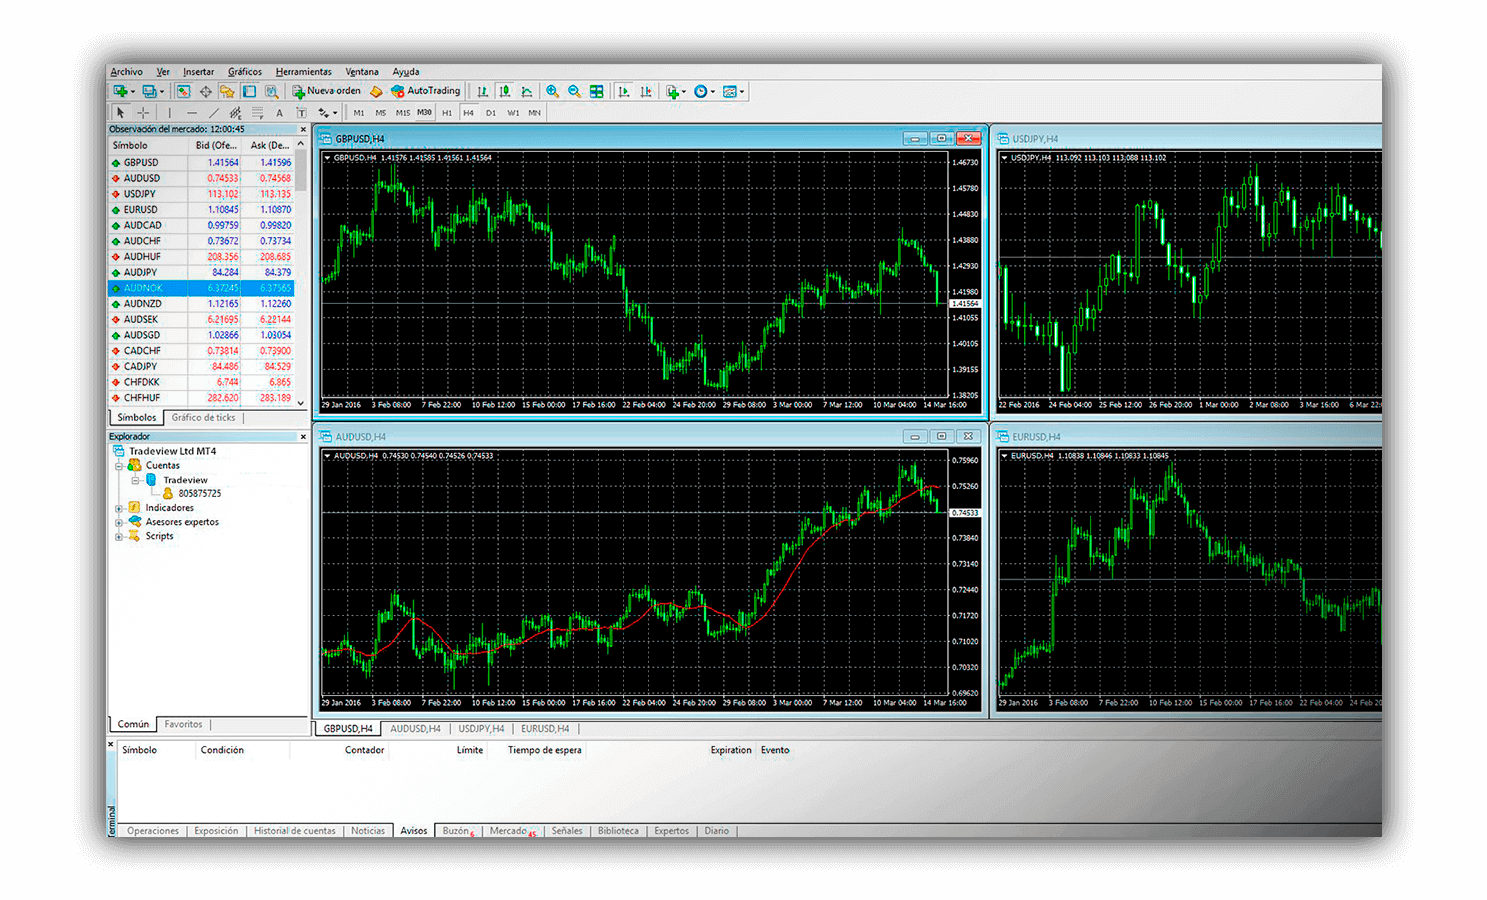 Tradeview's MetaTrader4 software